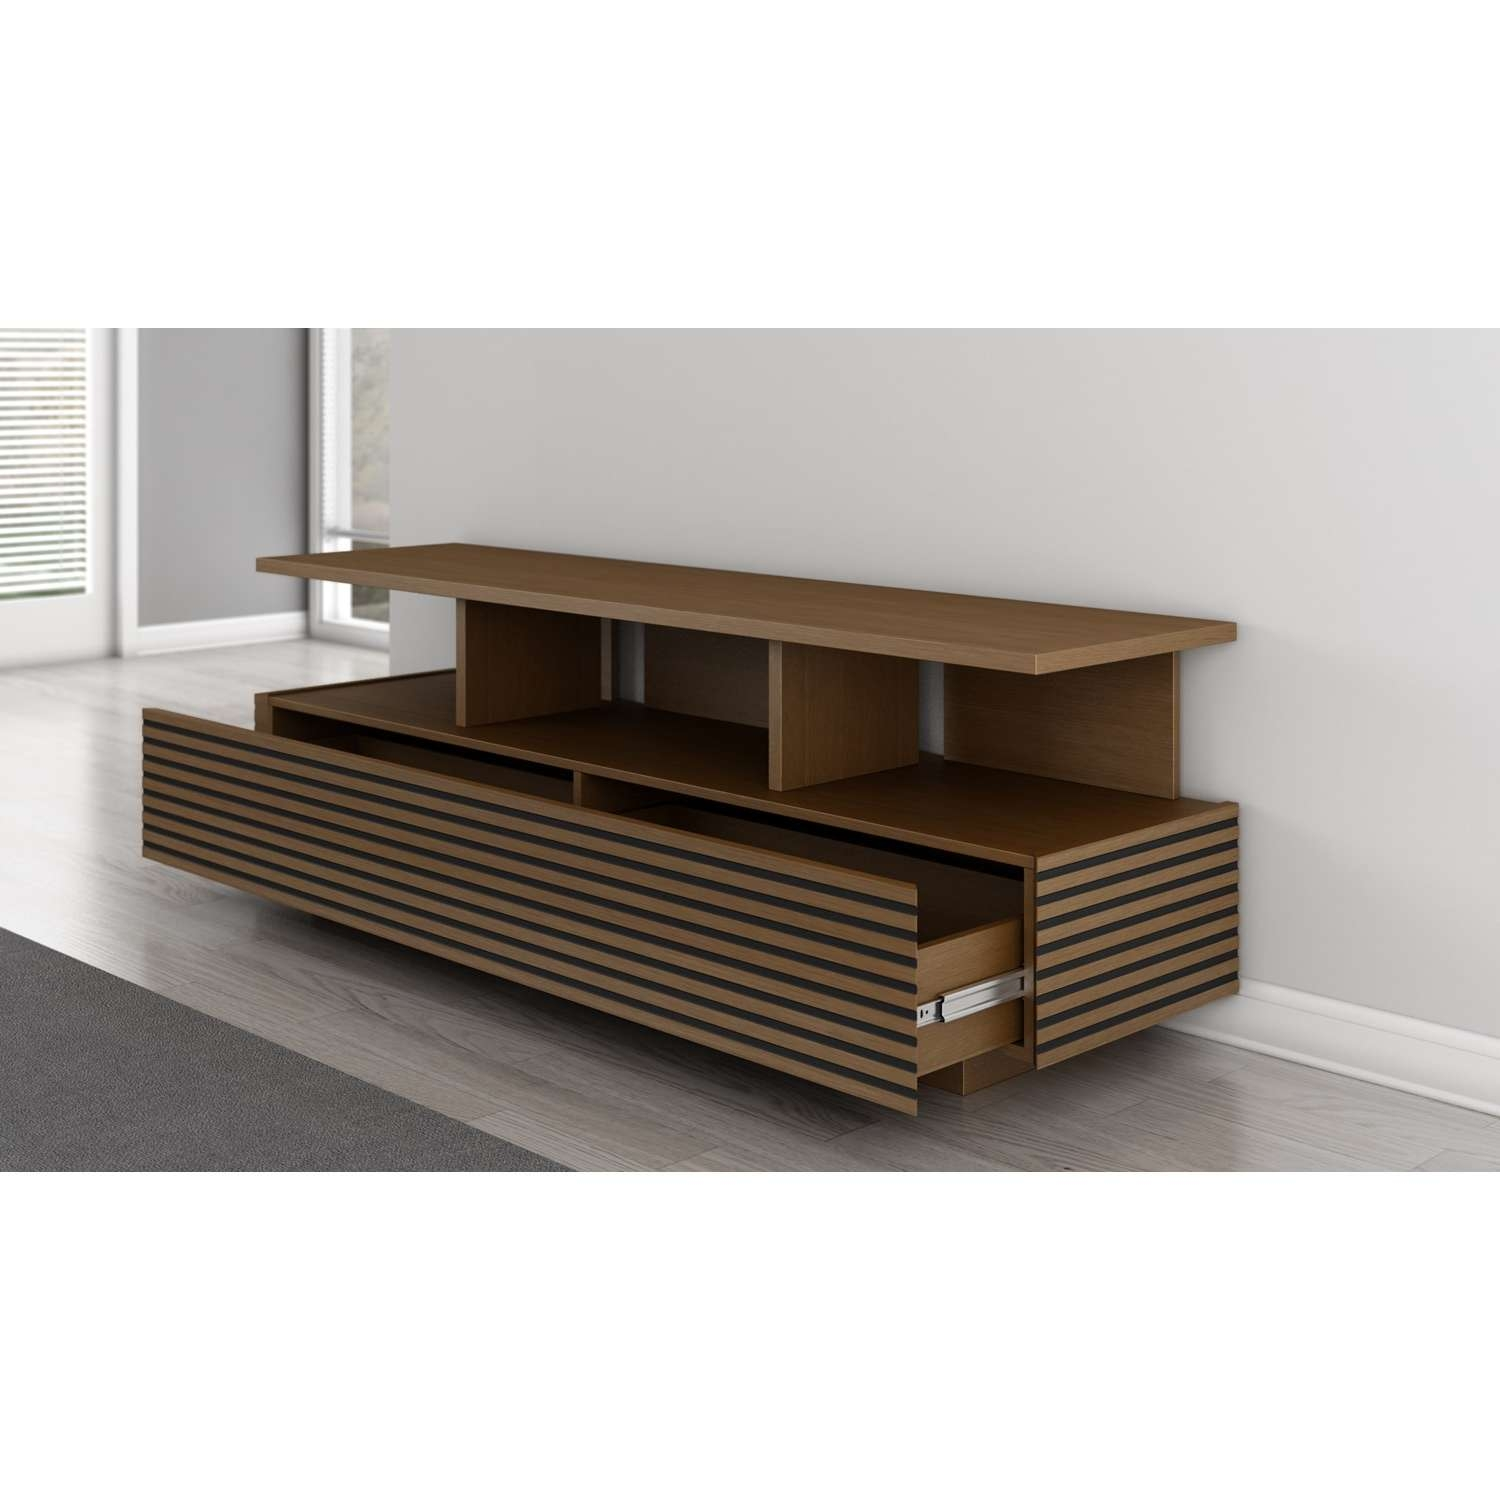 Furnitech Samba 70 Inch Sleek Contemporary Console : Autumn Cherry Intended For Sleek Tv Stands (View 6 of 15)